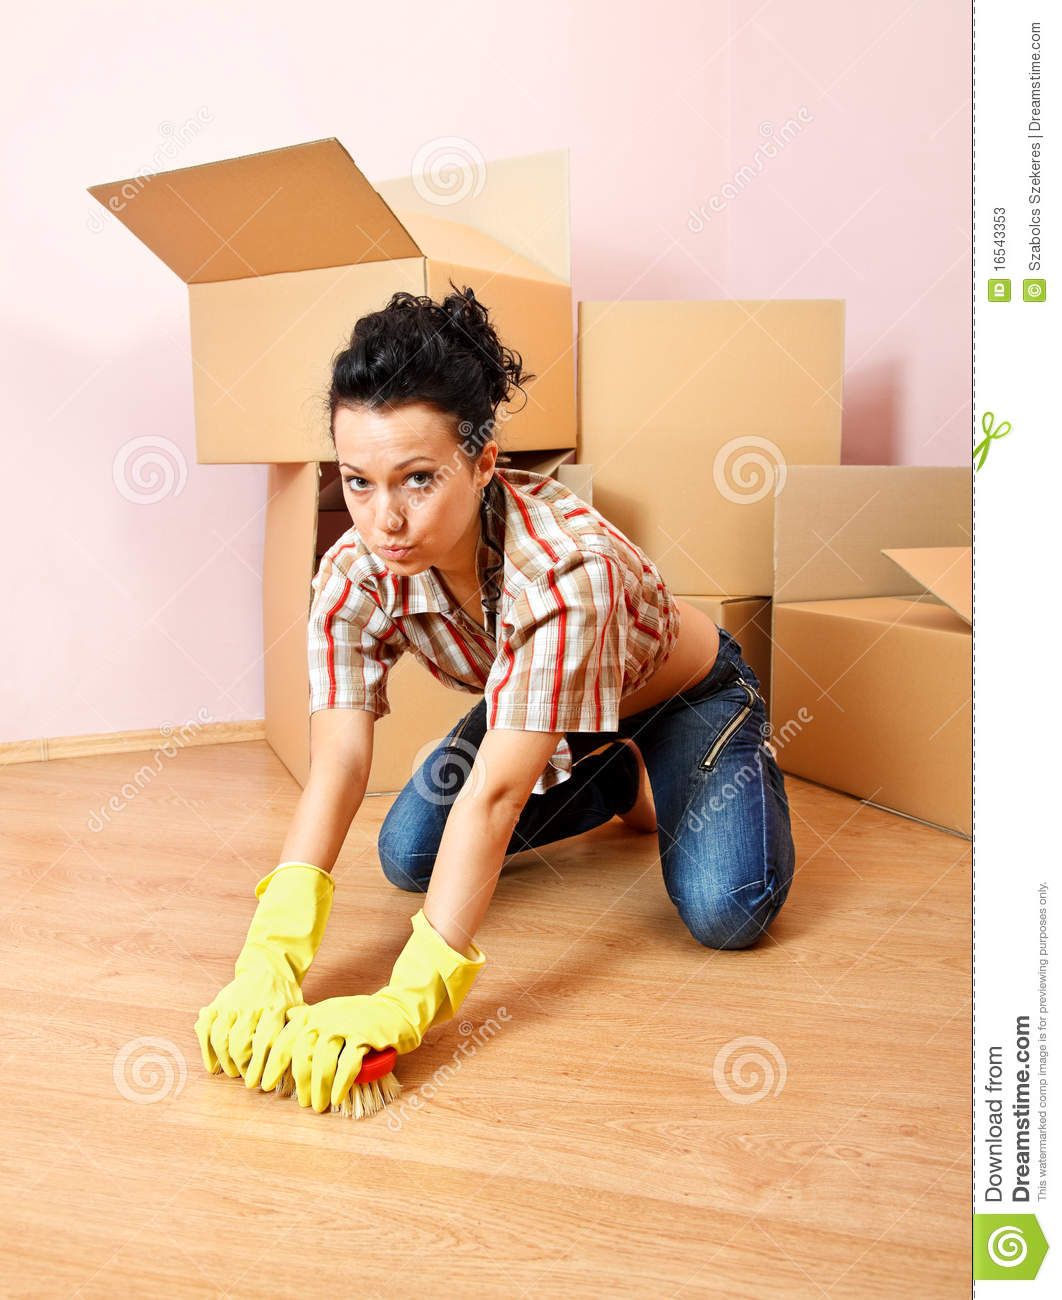 Tired Housewife Stock Photos - Image: 16543353